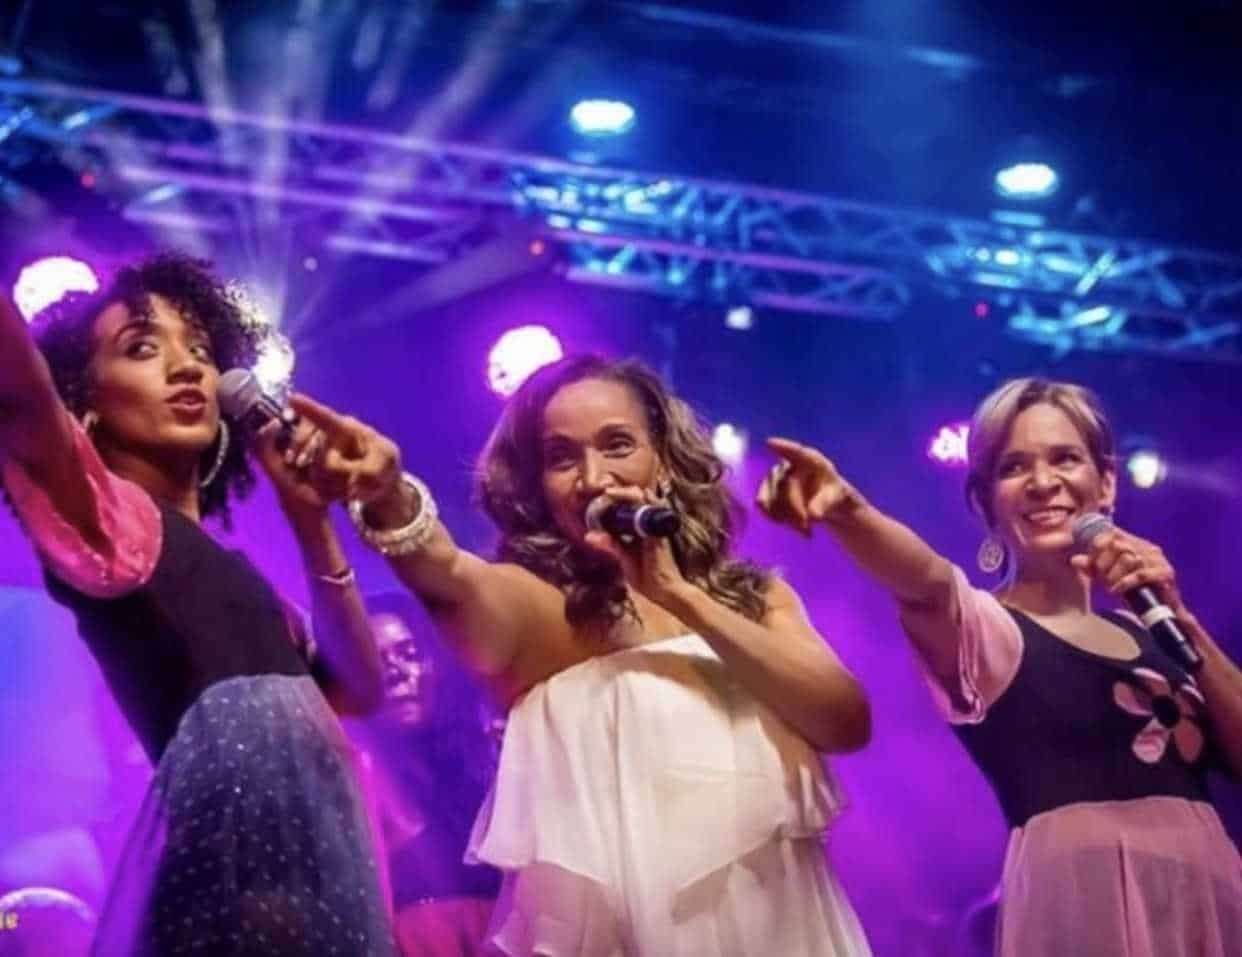 Disco superstars Sister Sledge will headline Smoked and Uncut at Lime Wood hotel on 27th July